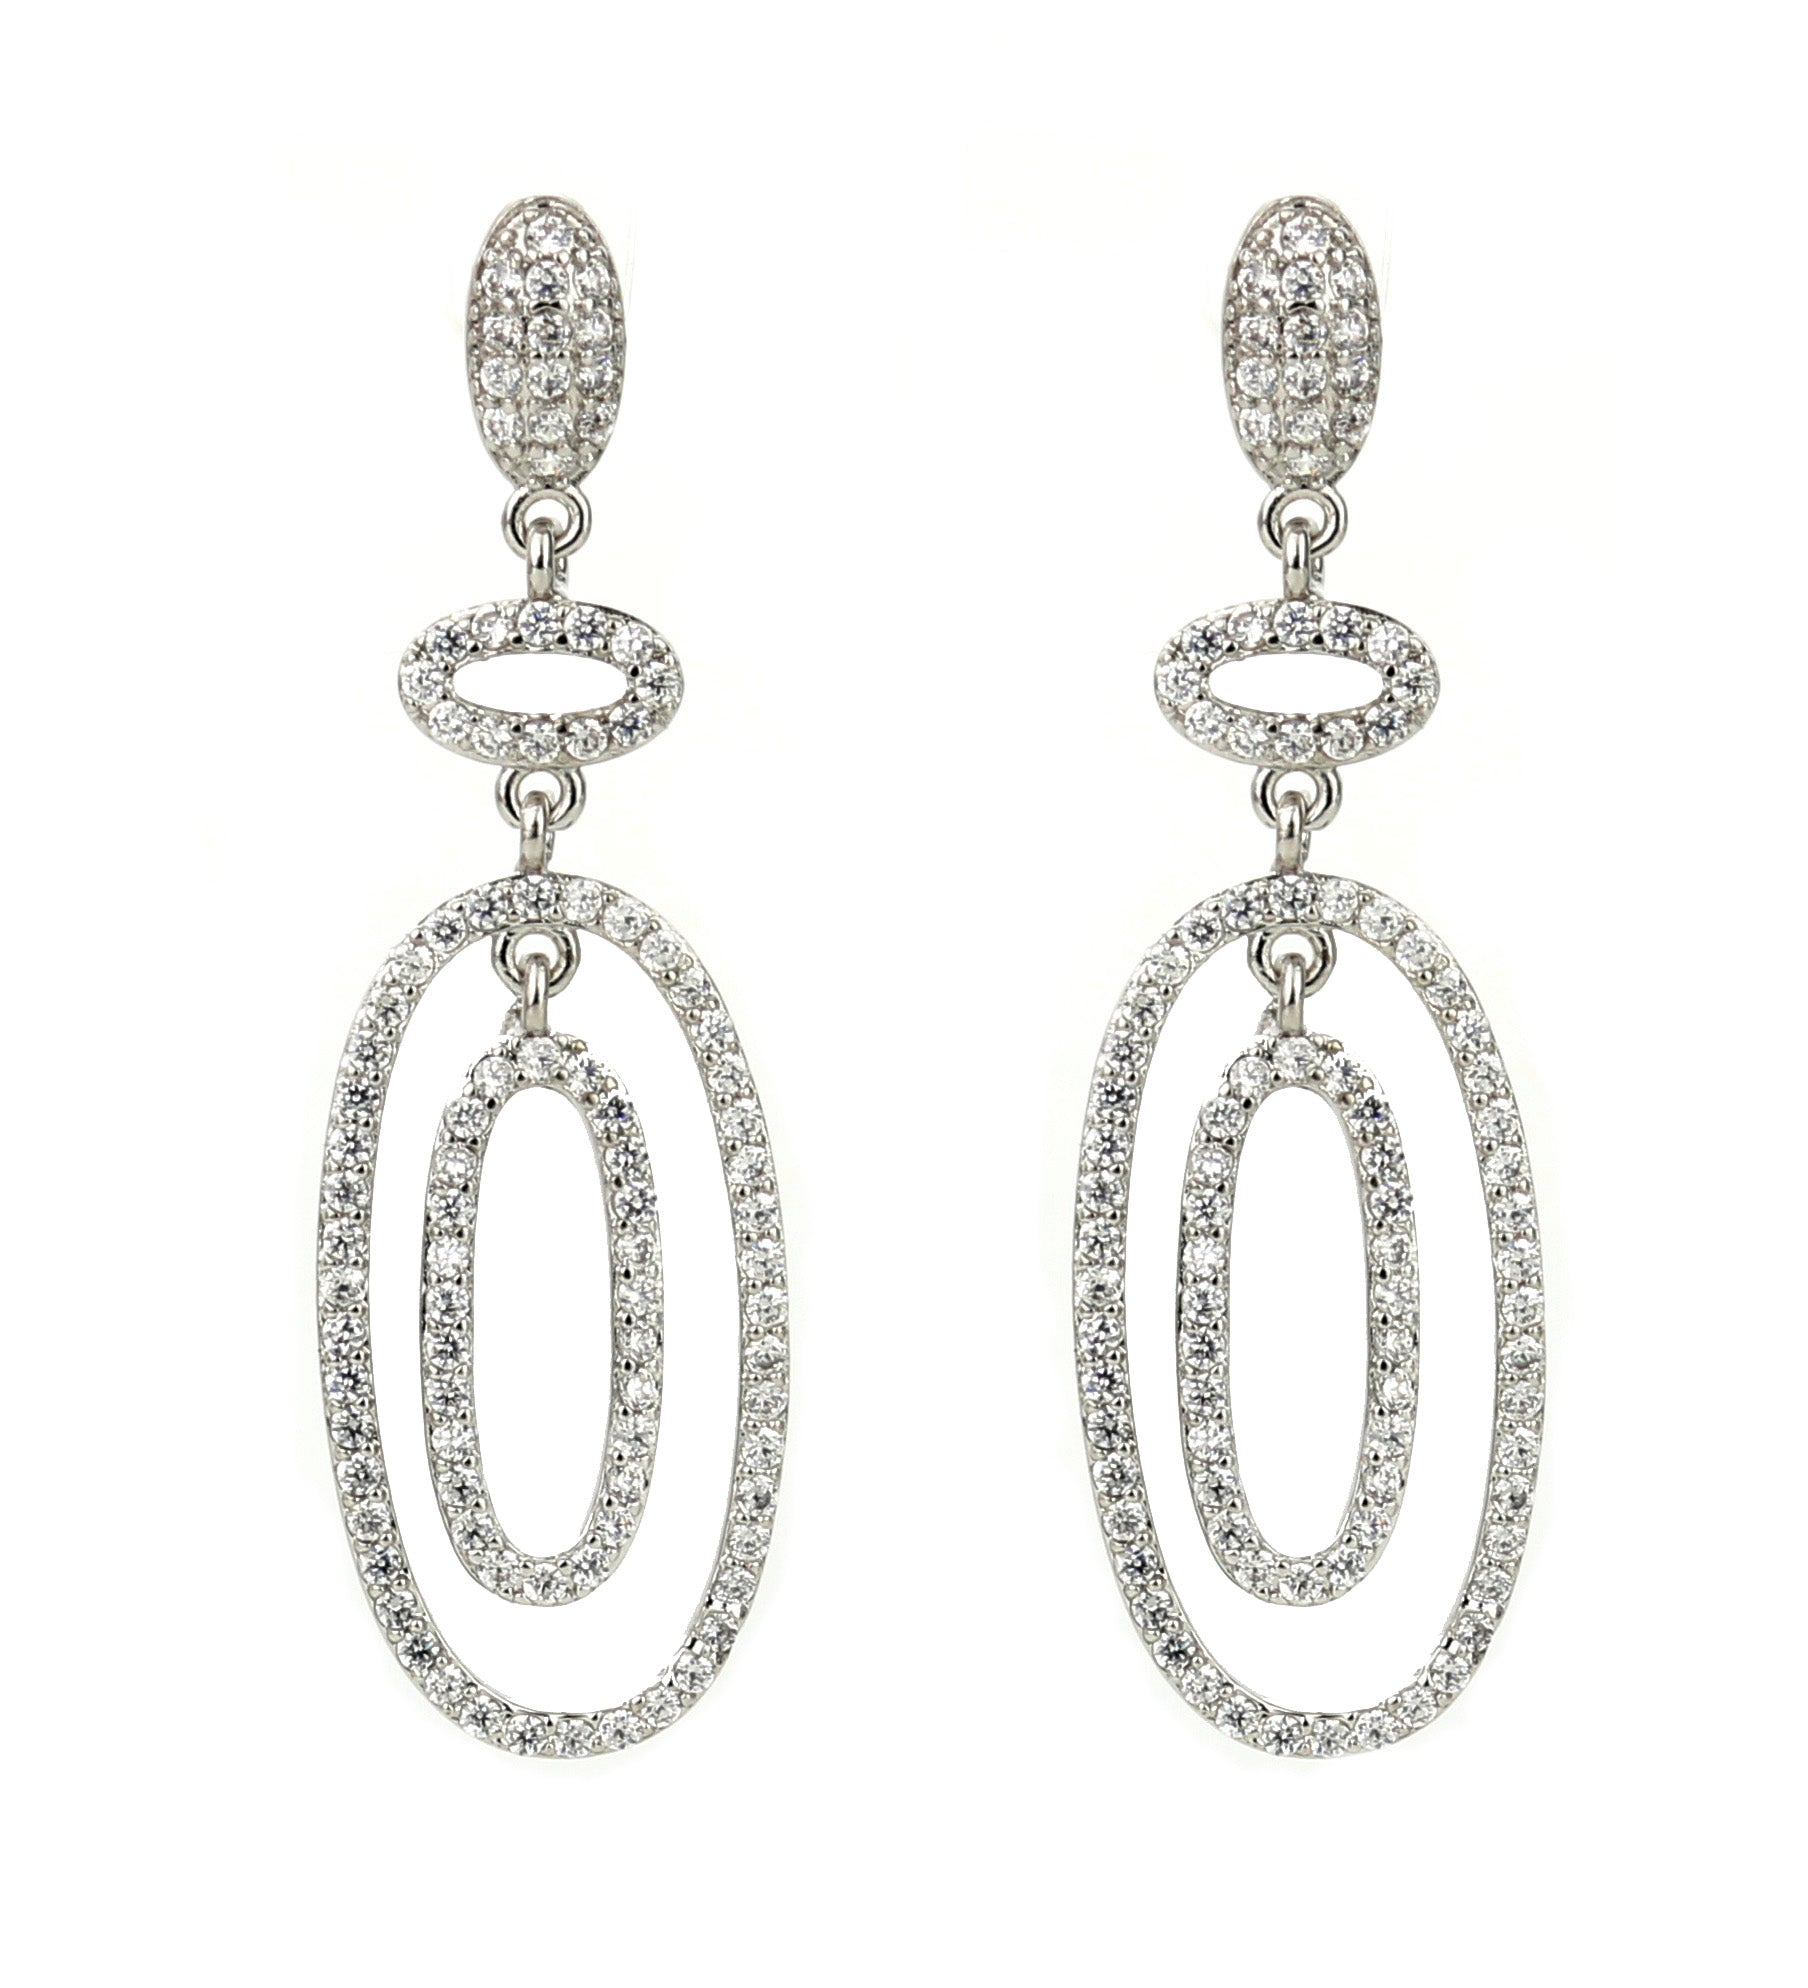 silver, crystal, shiny, statement, rhinestone, embellished, pave, trendy, chic, earrings